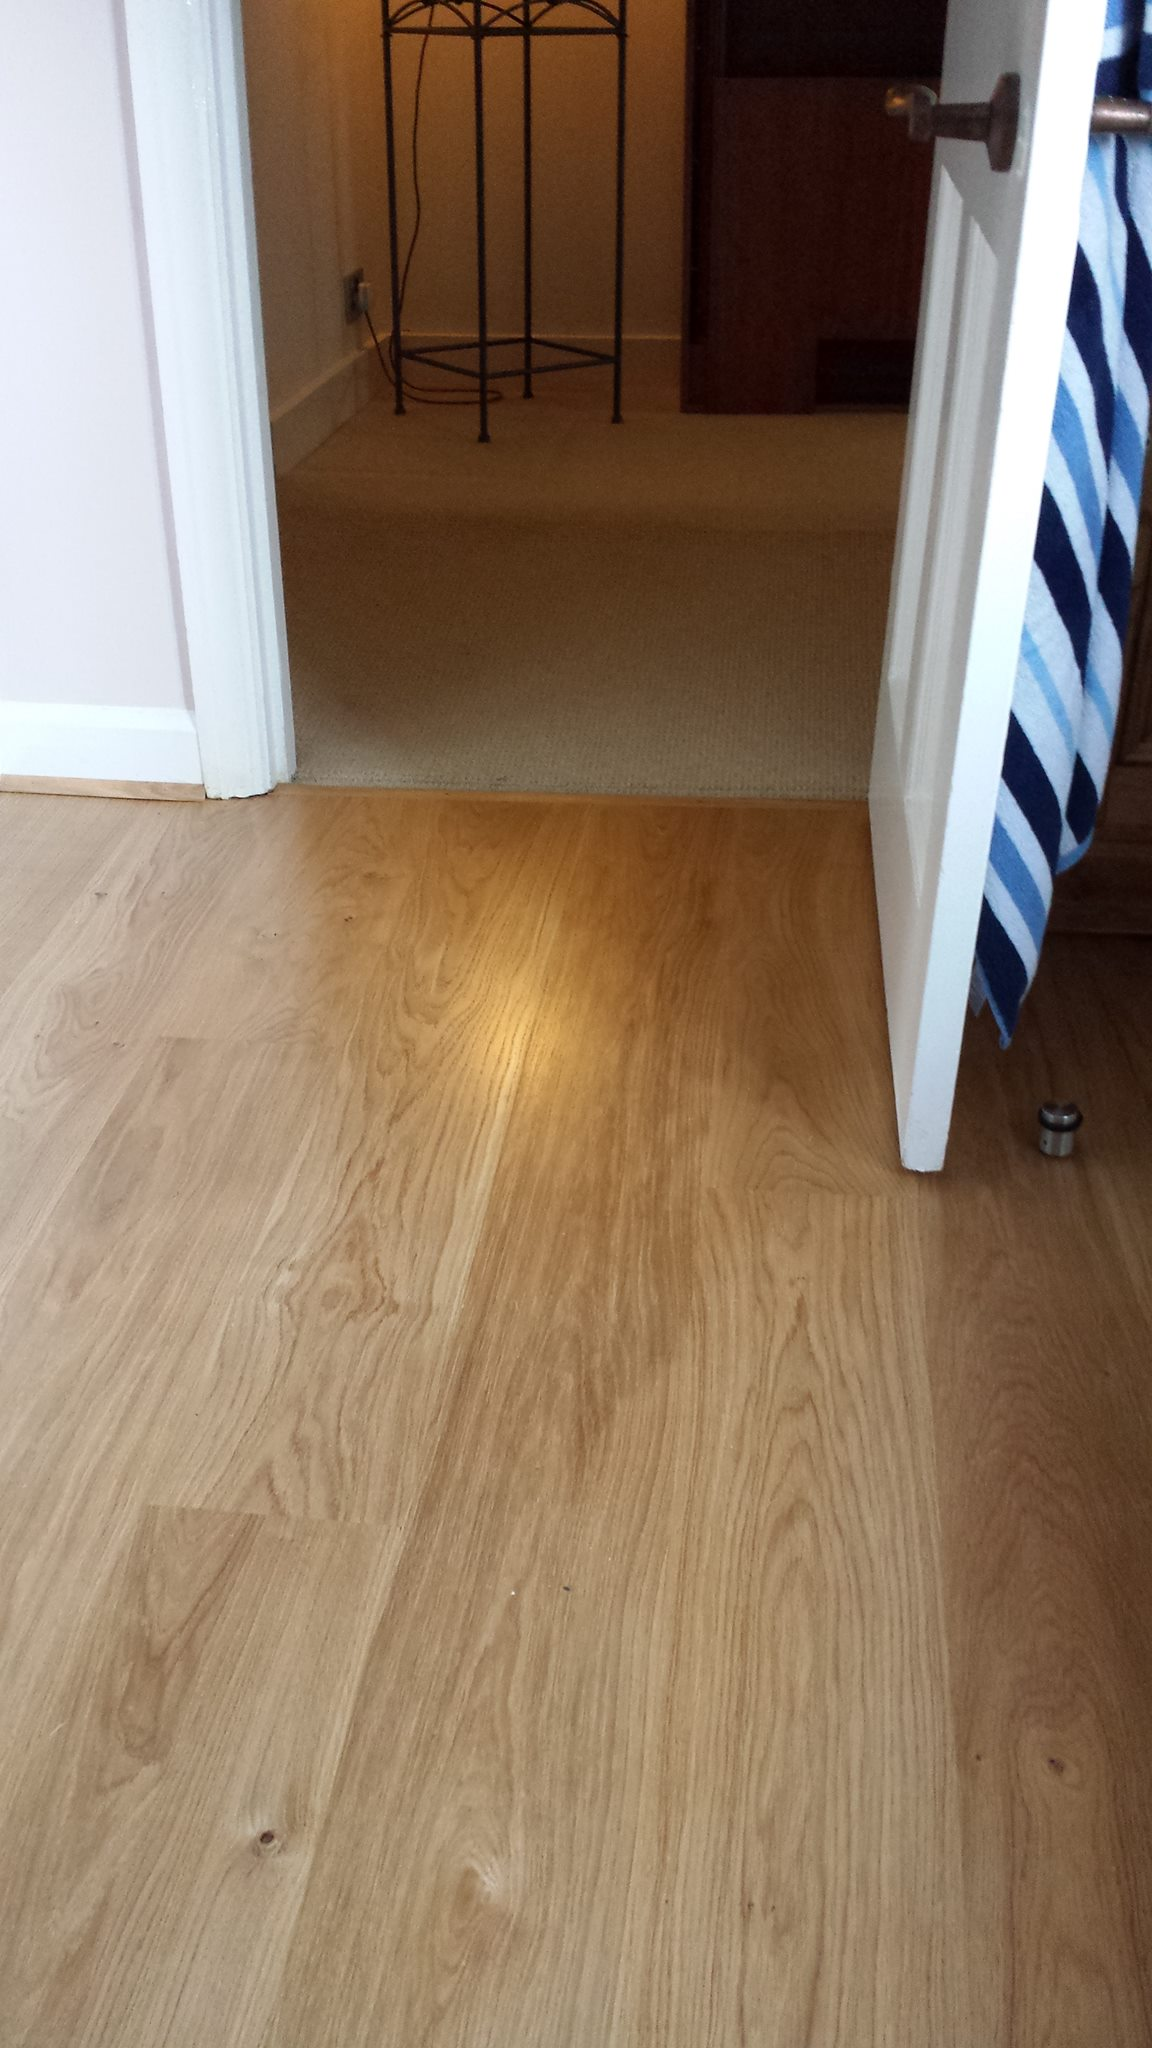 Laminate flooring laying carpets laminate flooring for Laying laminate flooring